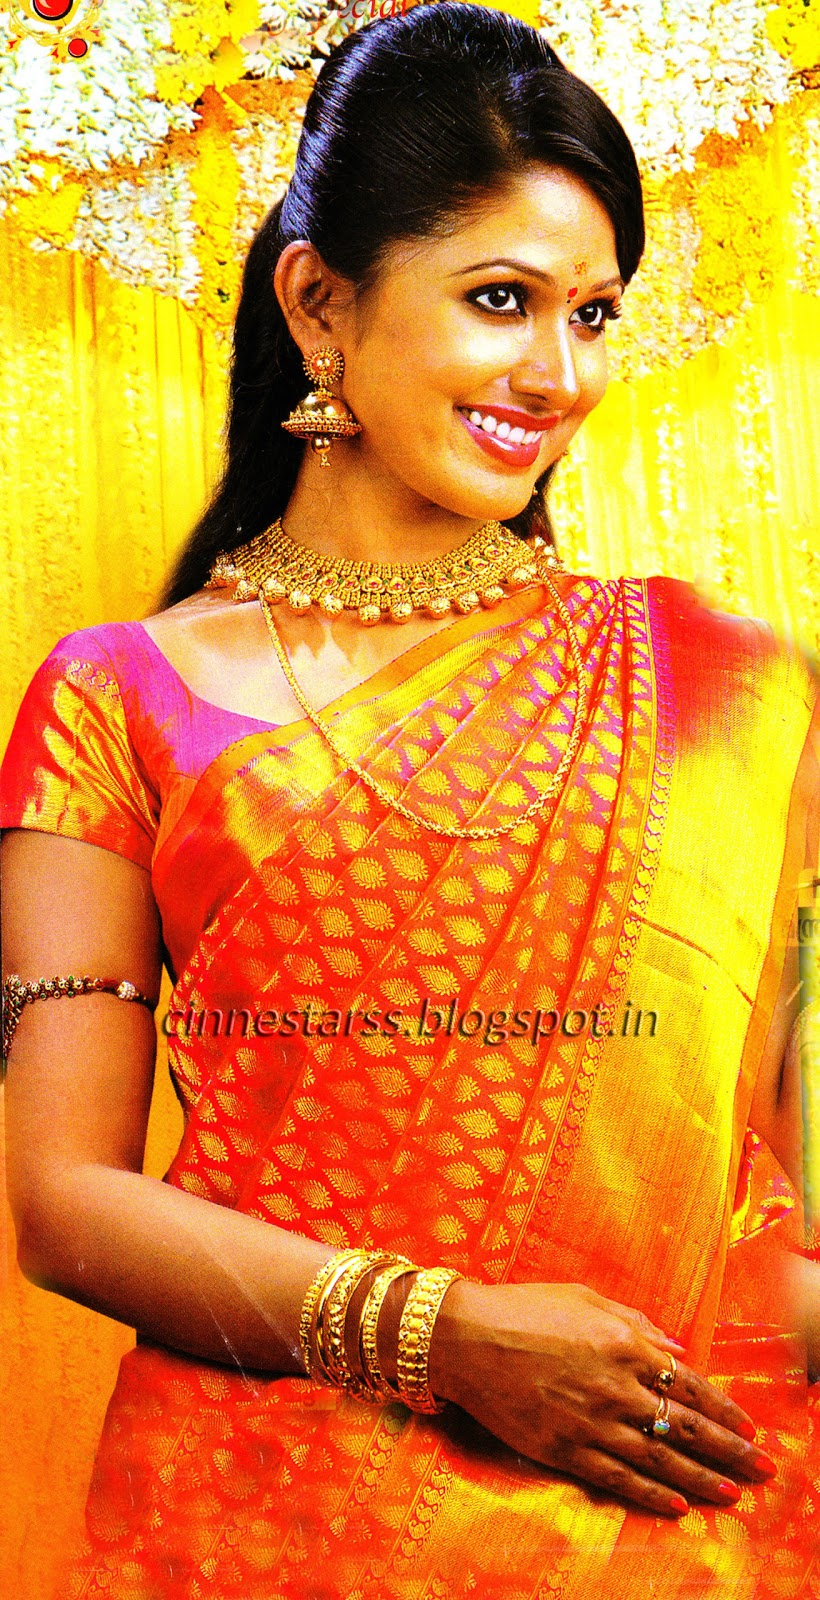 Cine Stars: Priya Mohan for Serial Actress Priya Mohan Wedding Photos  156eri